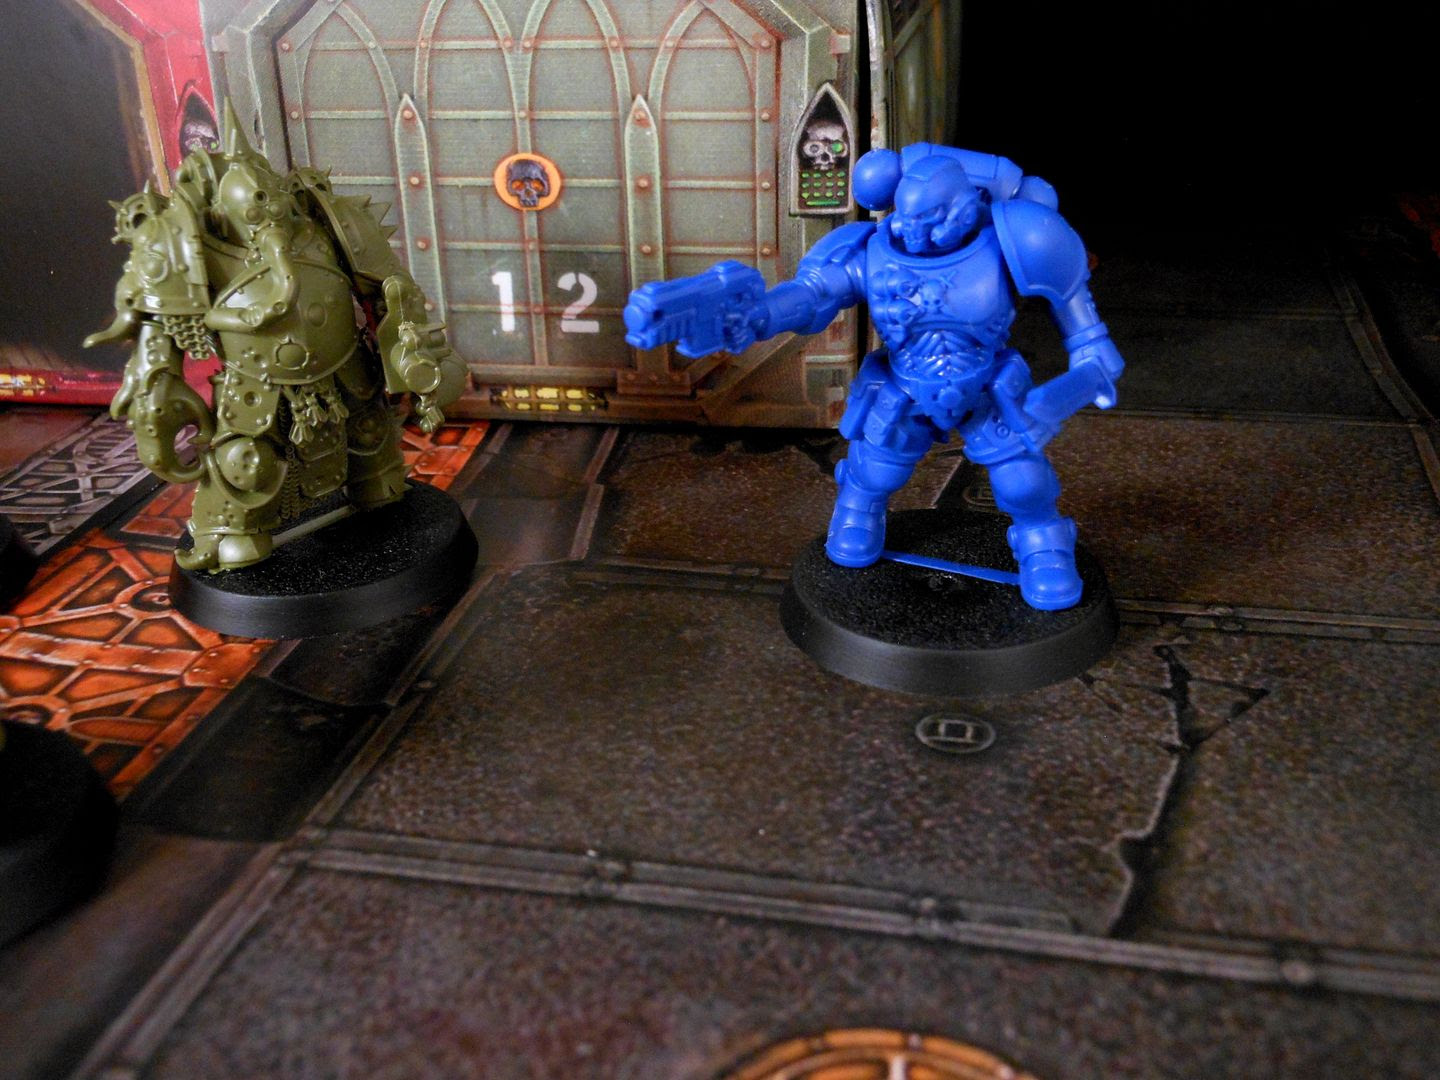 A Reiver Space Marine attacks a Death Guard Marine in Warhammer 40,000: First Strike.